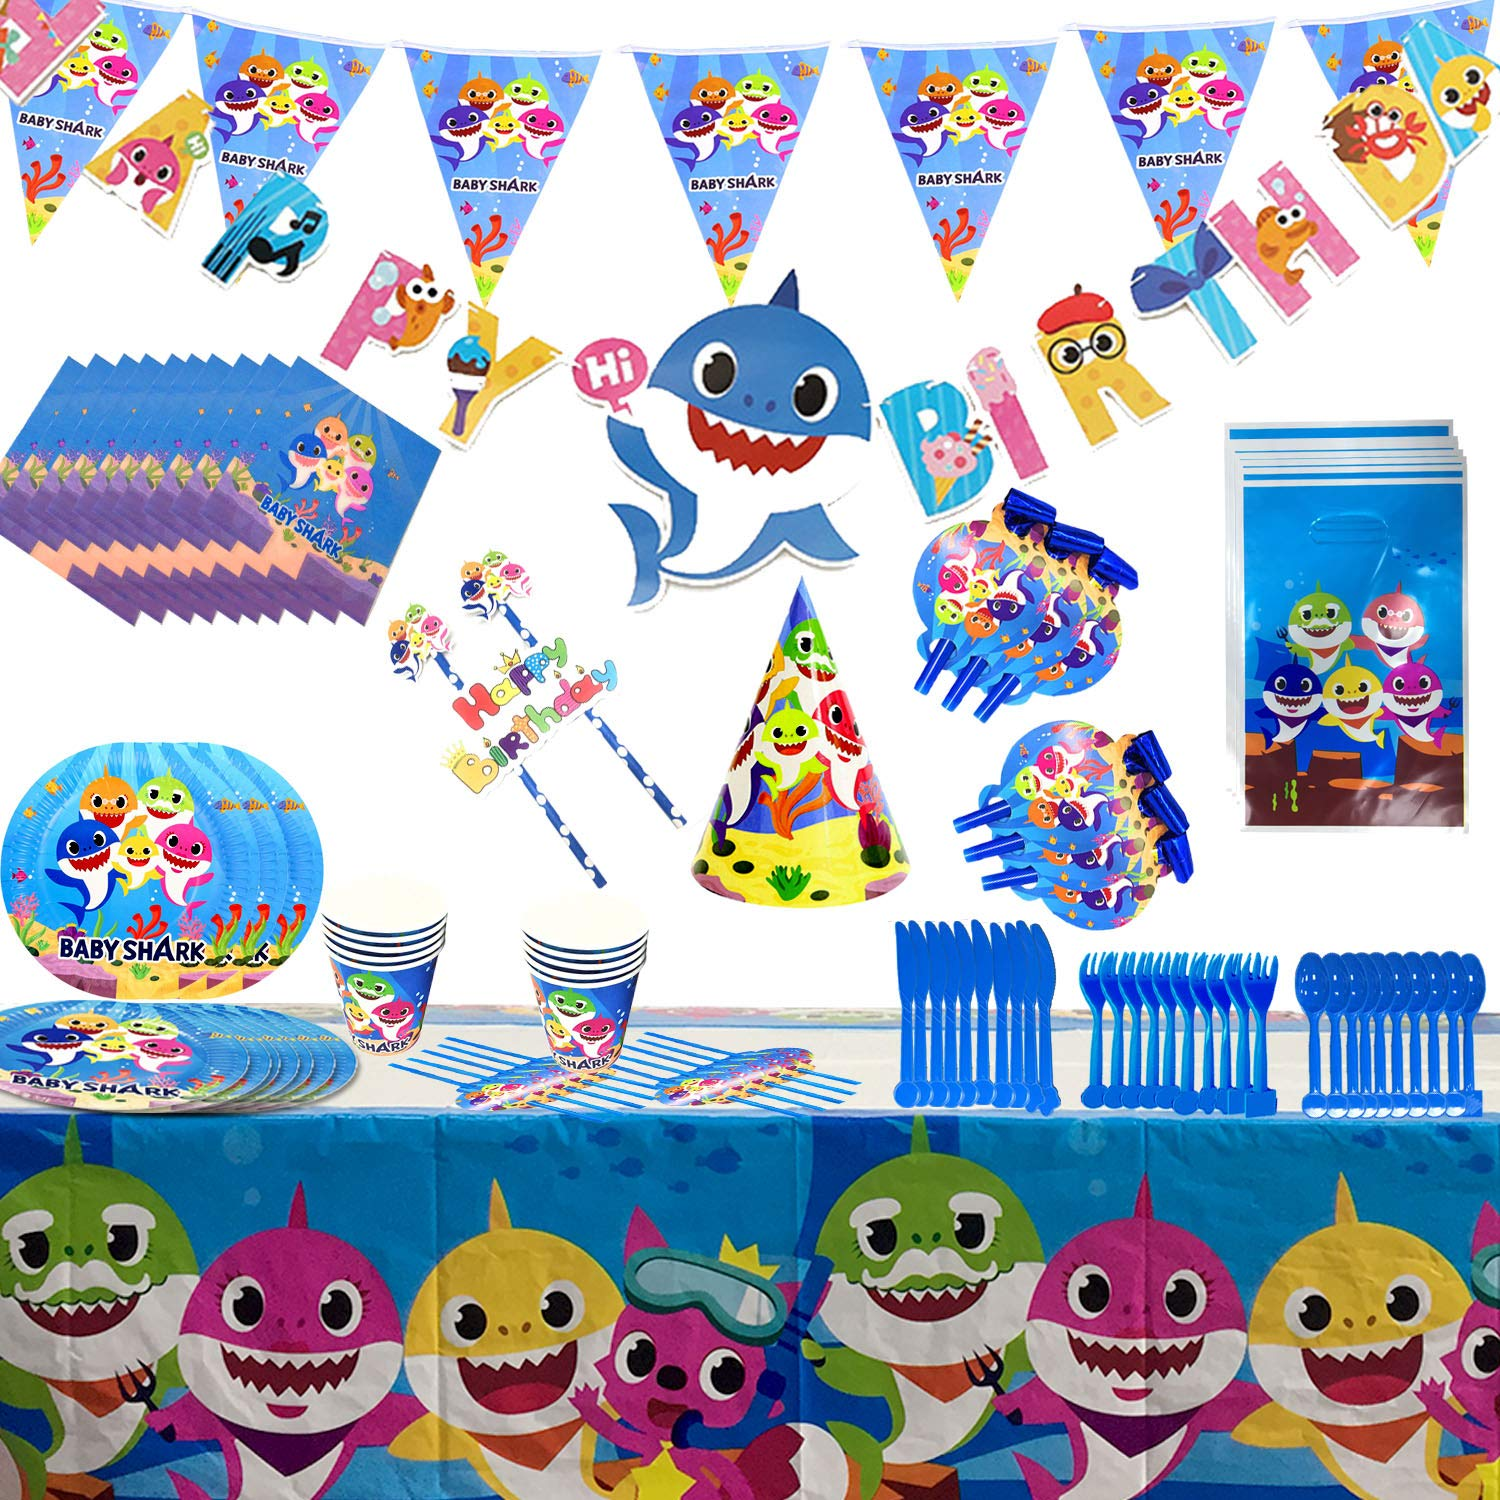 Baby Shark Party Supplies Set - 109 Pcs Baby Shark Themed Birthday Decorations Includes Disposable Tableware Kit Blowing Dragon Paper Hat Gift Bag and Banner - Serves 10 Guest by AiParty (Image #3)